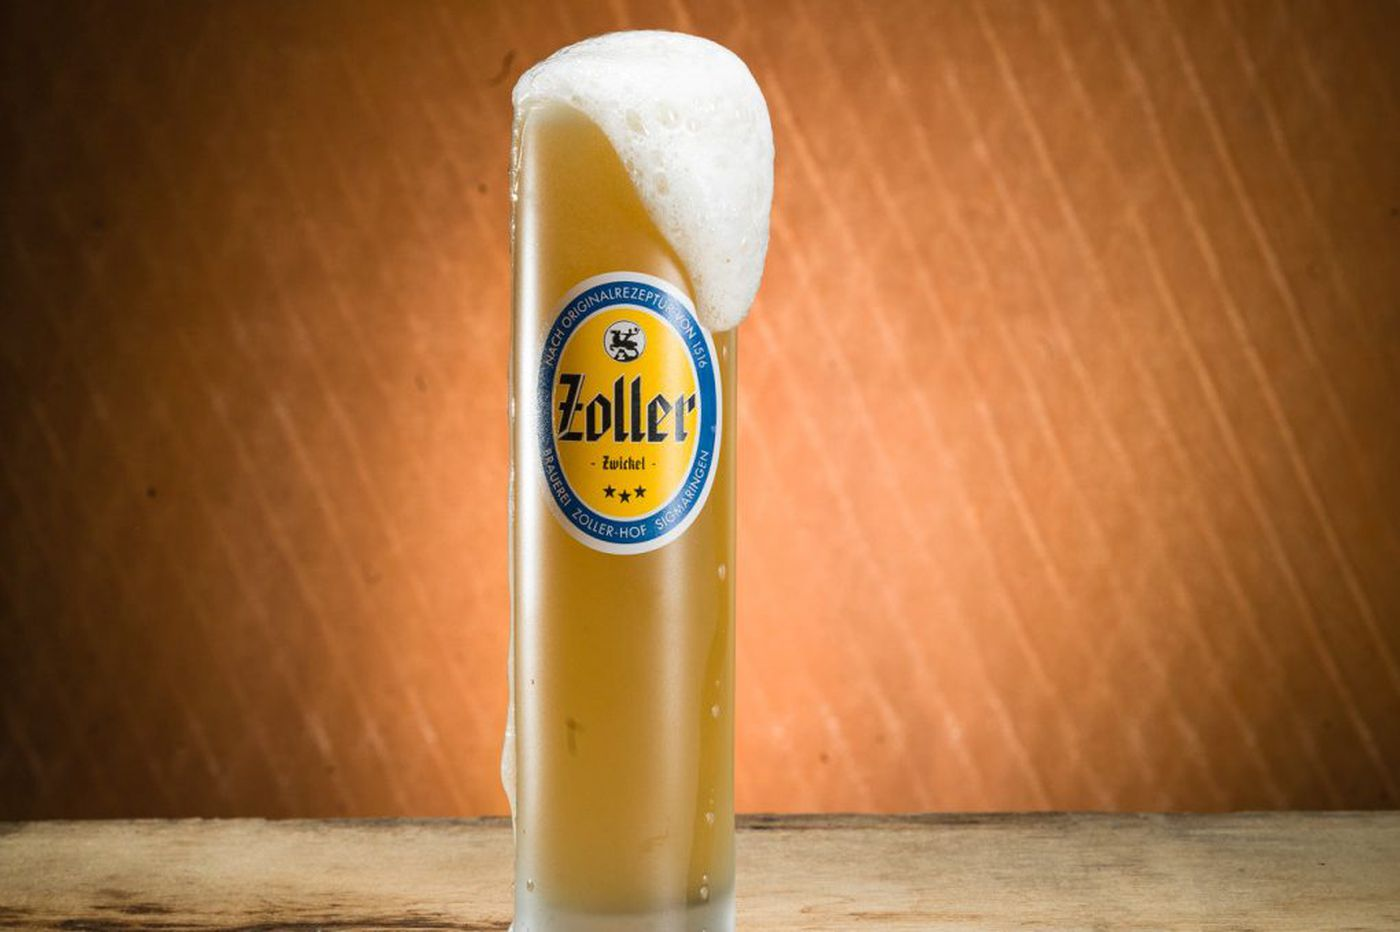 German beers get crafty, creative (and hoppy!) at coming Bierfest